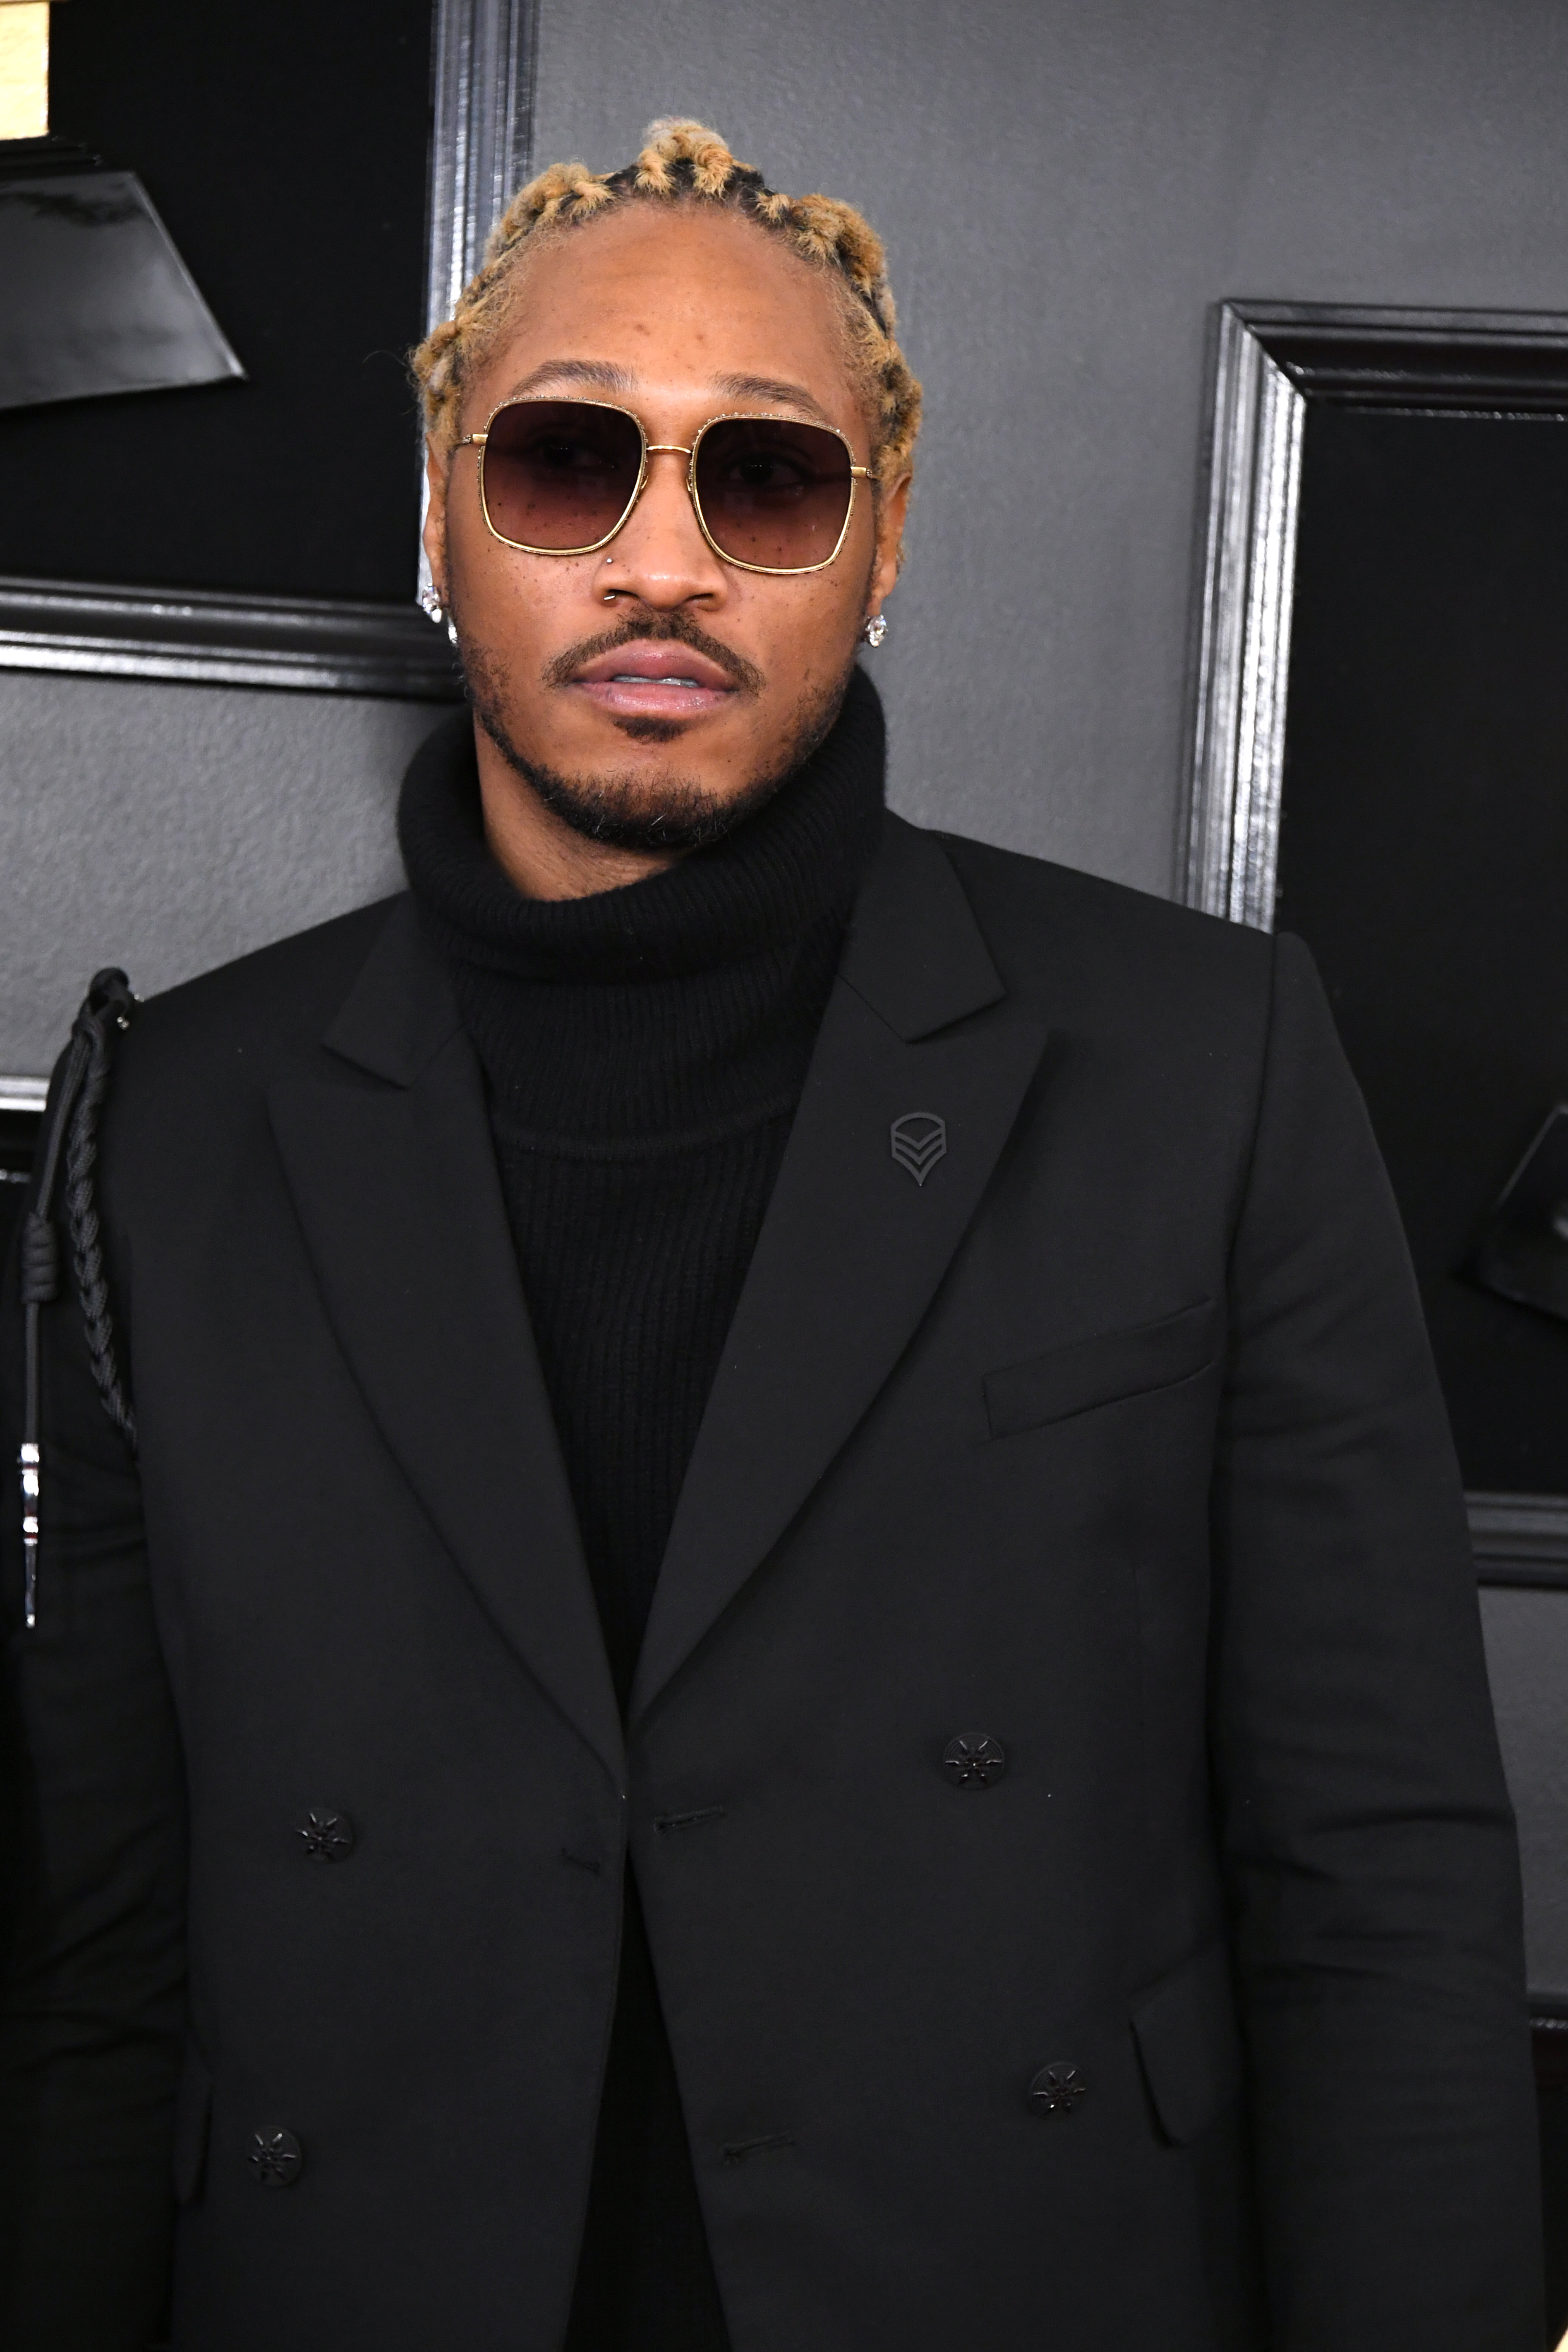 Future's Bodyguard Reportedly Not Pressing Charges After Being Knocked Out In Viral Video